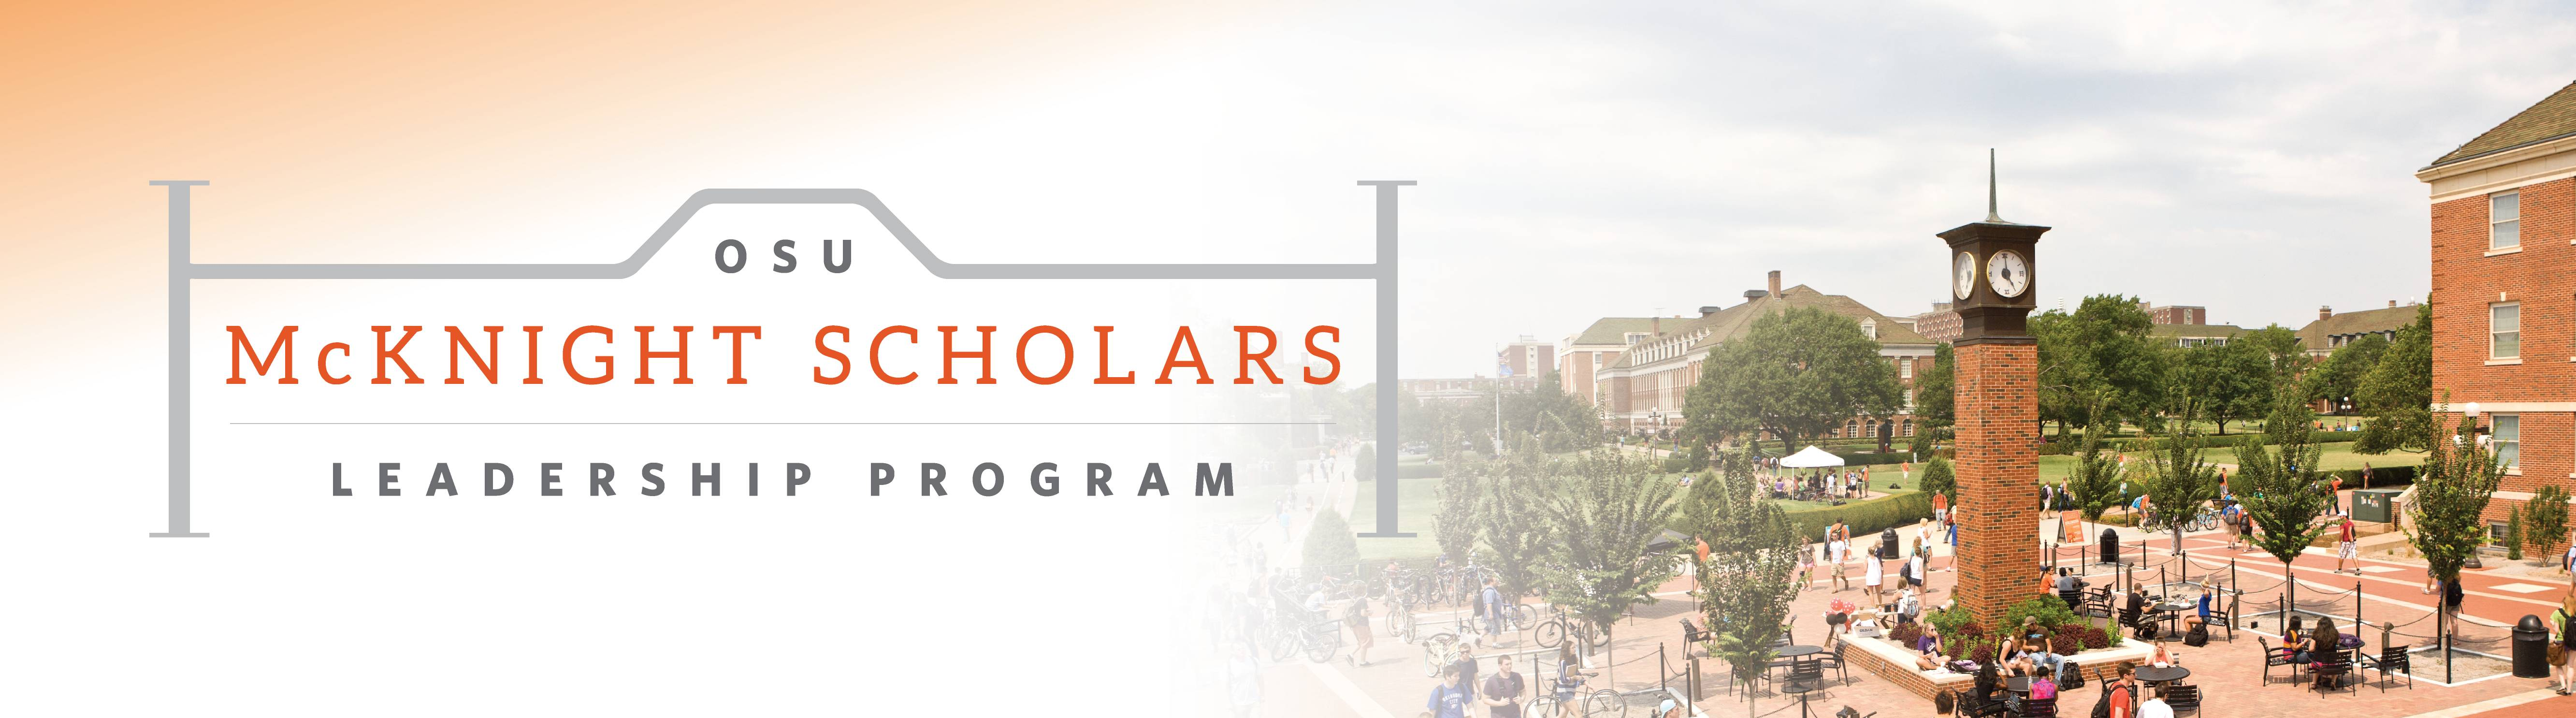 McKnight Scholars Program